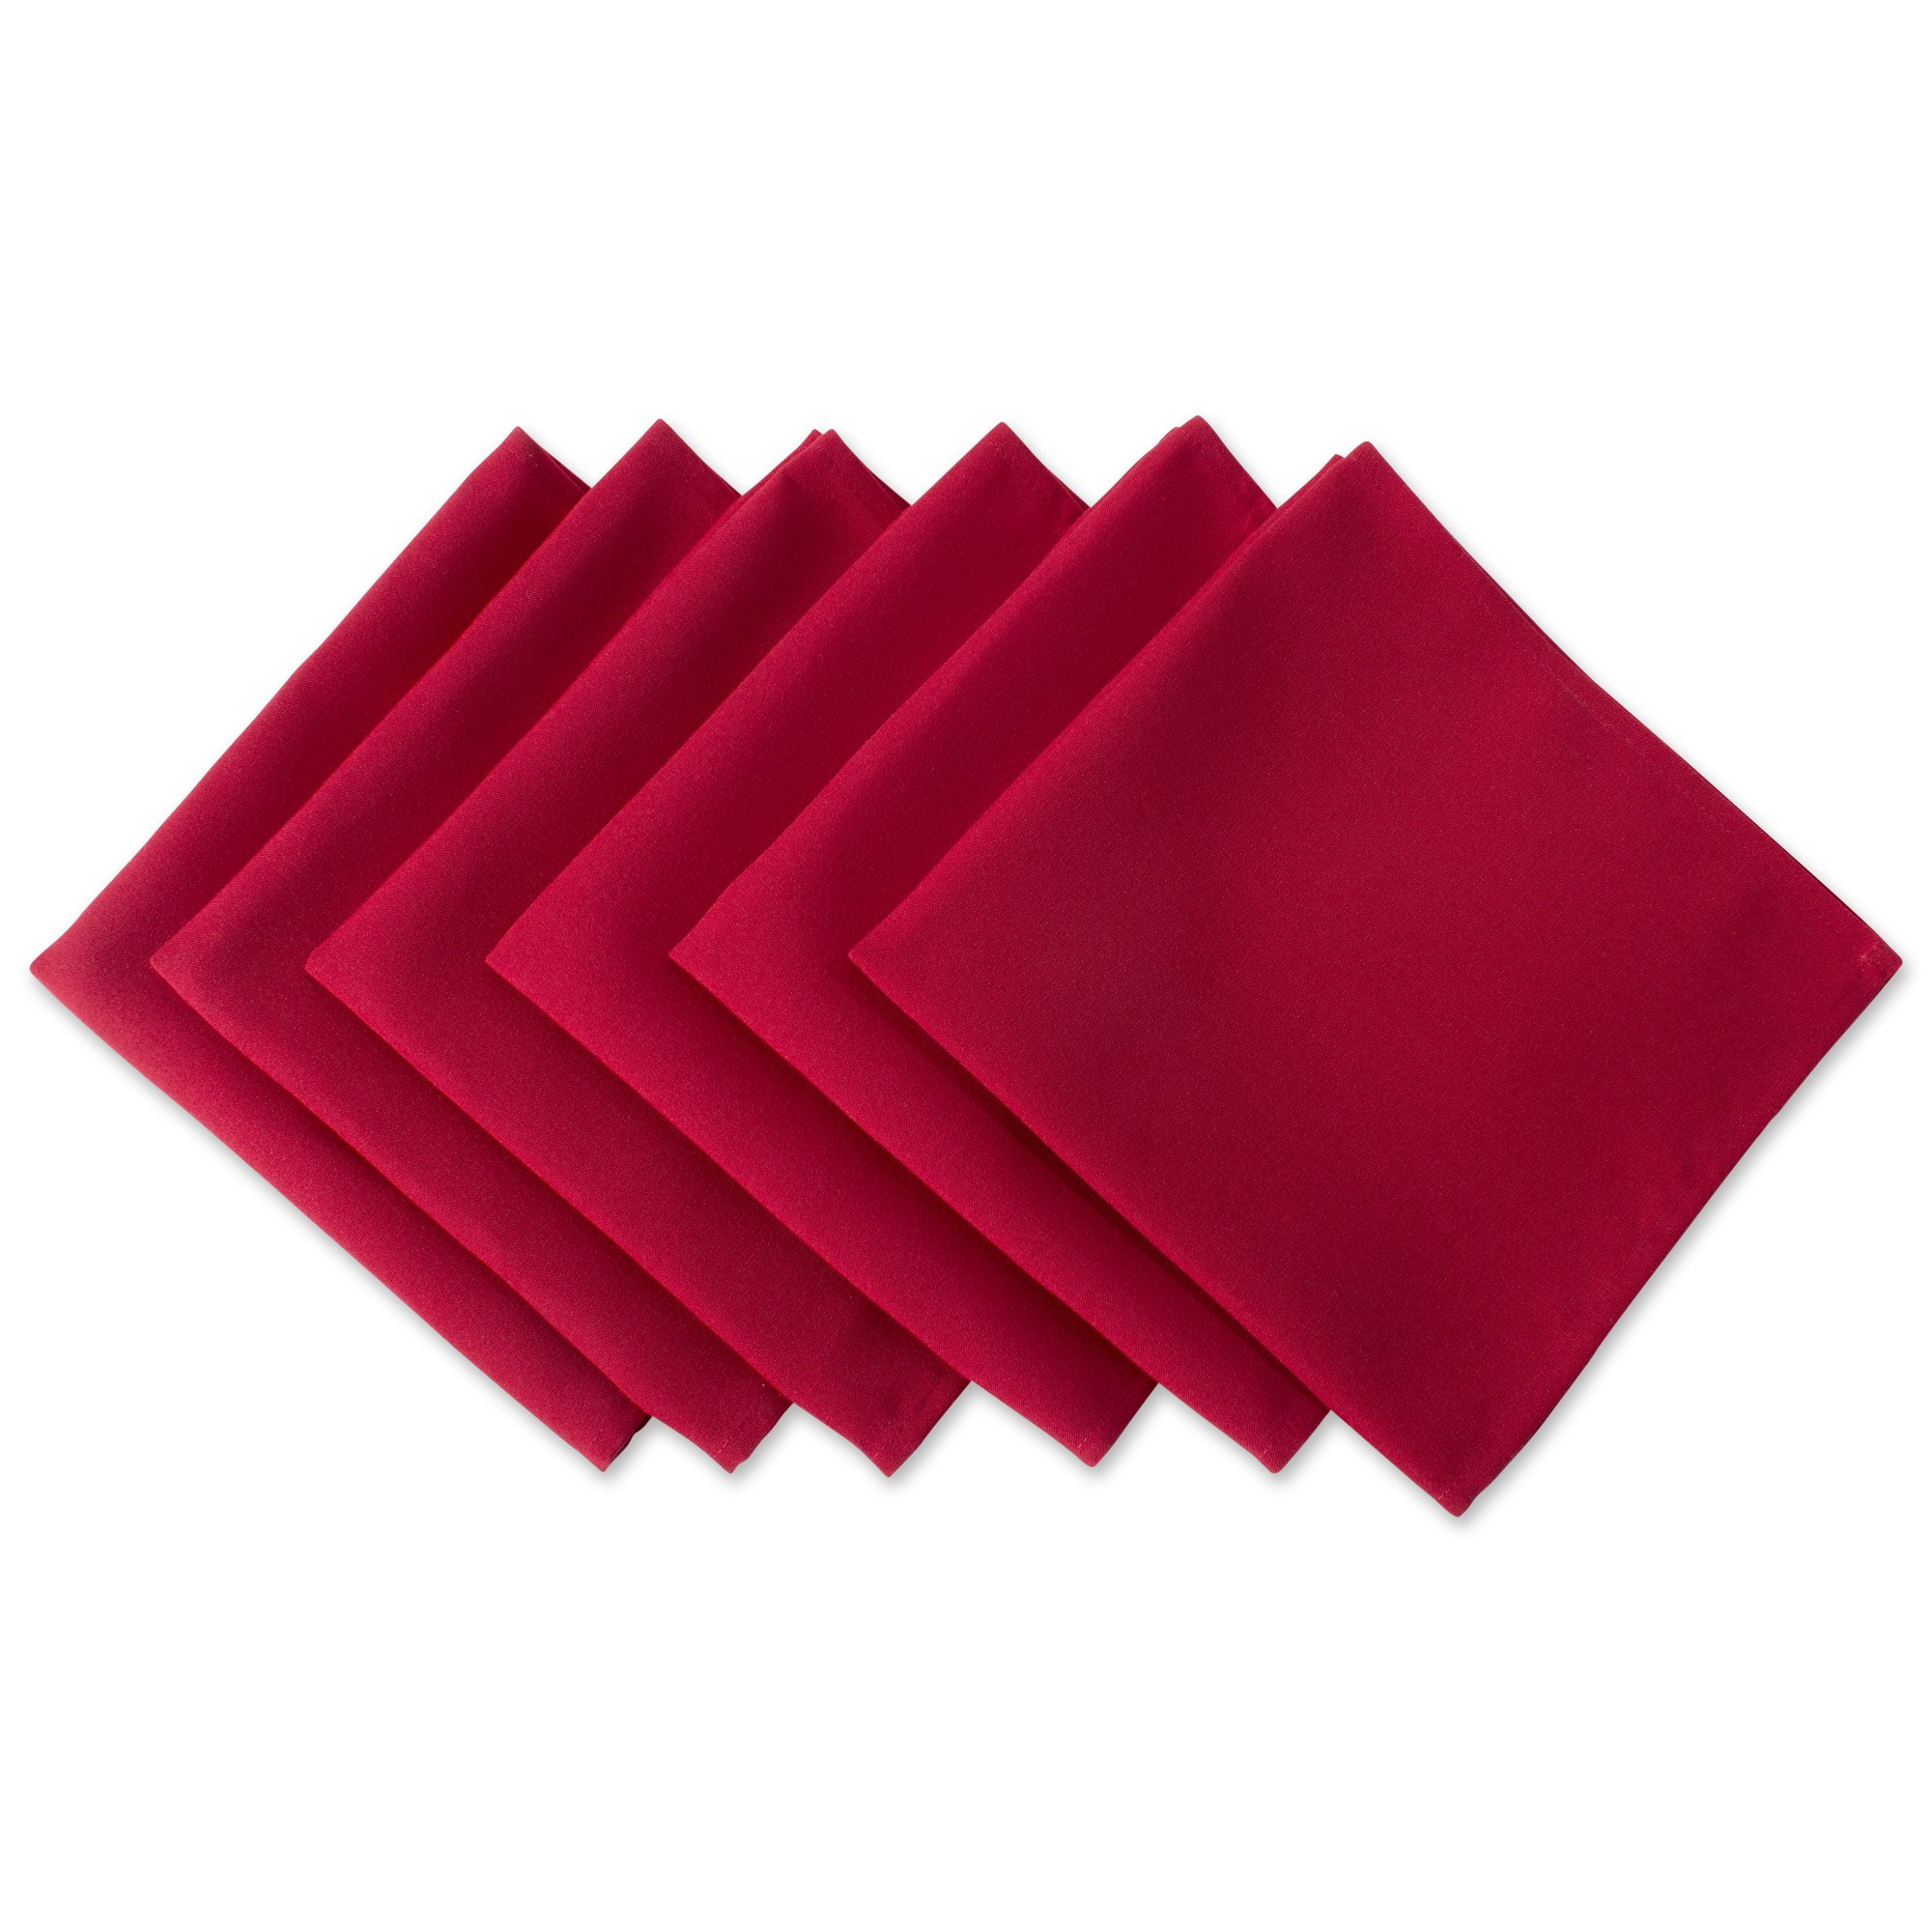 DII Wrinkle Resistant 20x20'' Polyester Napkin, Pack of 6, Red - Perfect for Brunch, Catering Events, Thanksgiving, Dinner Parties, Christmas and Everyday Use